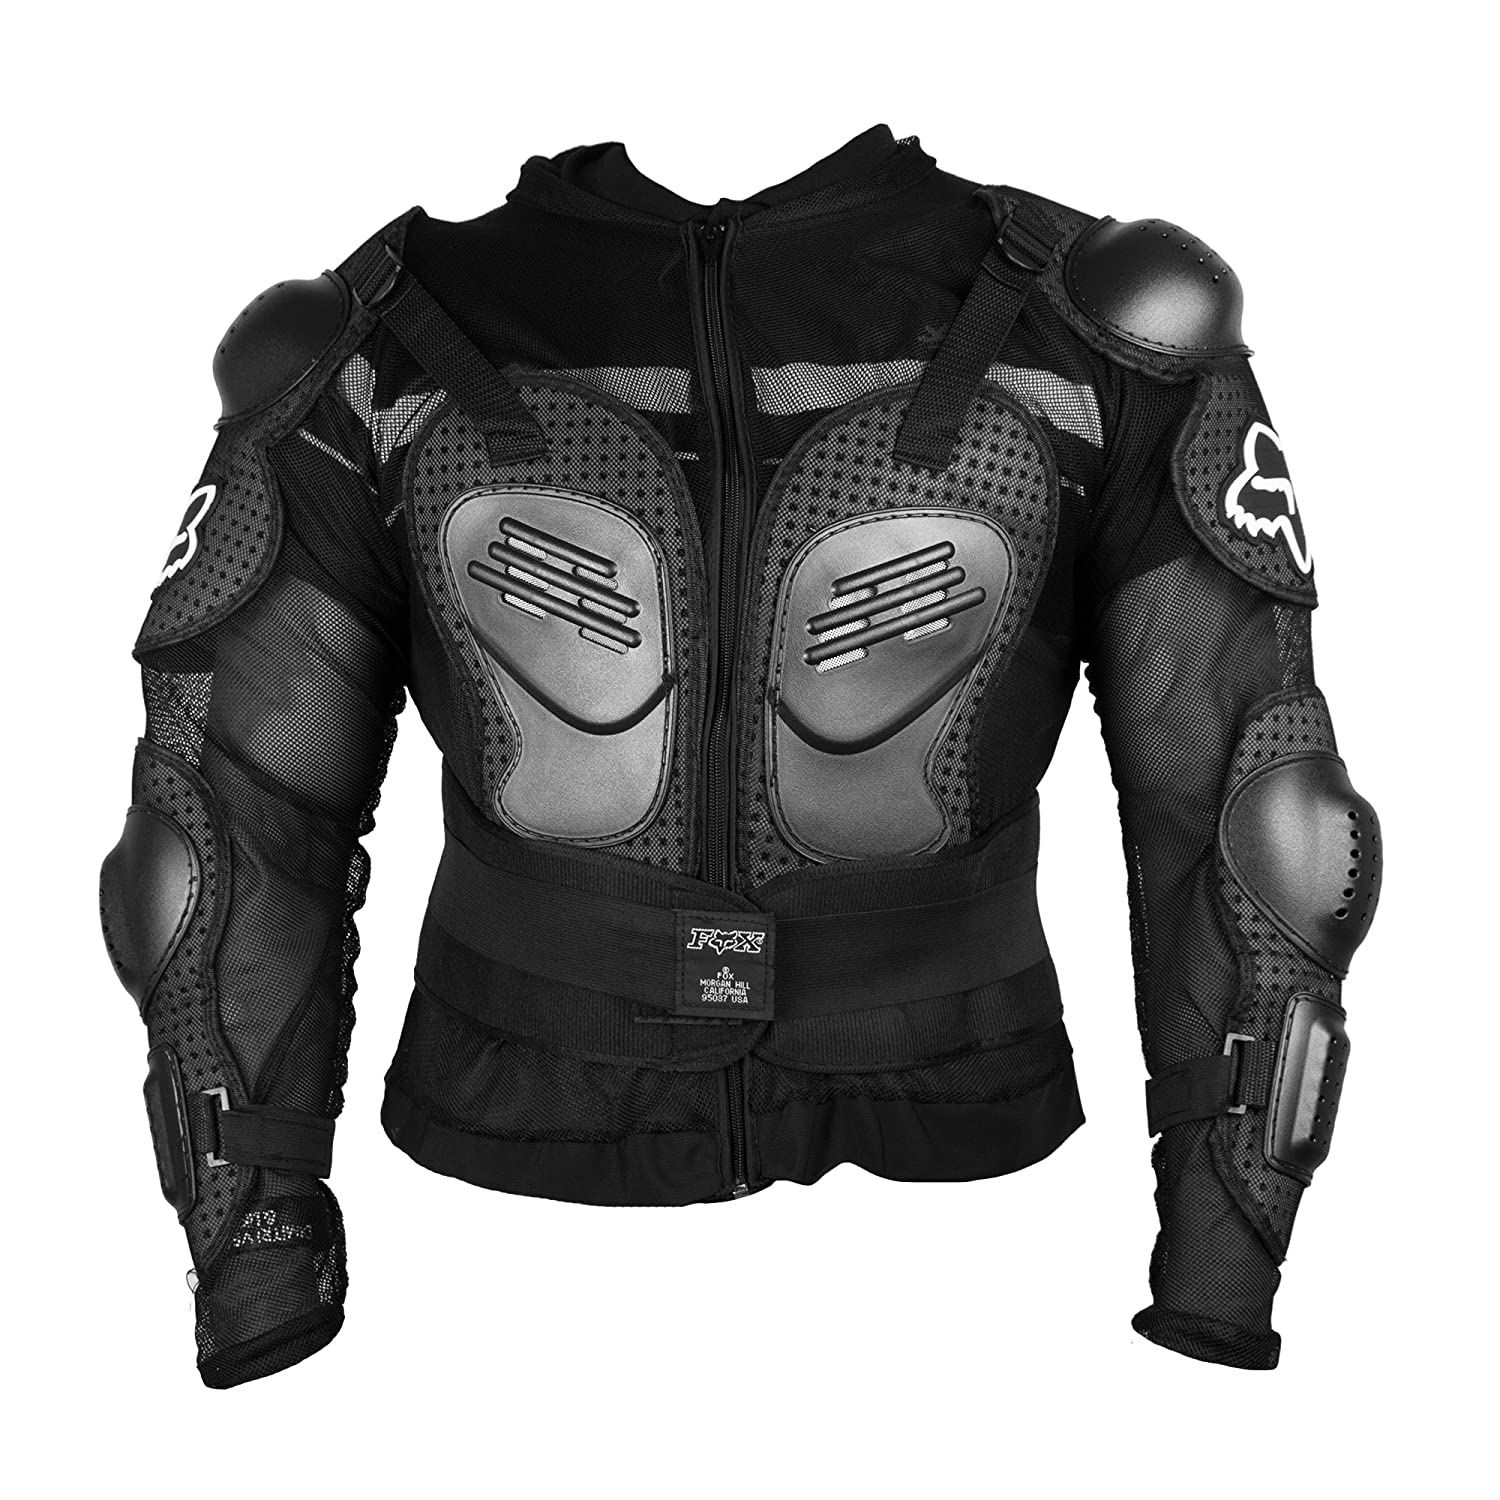 Autofy Protective Riding Gear